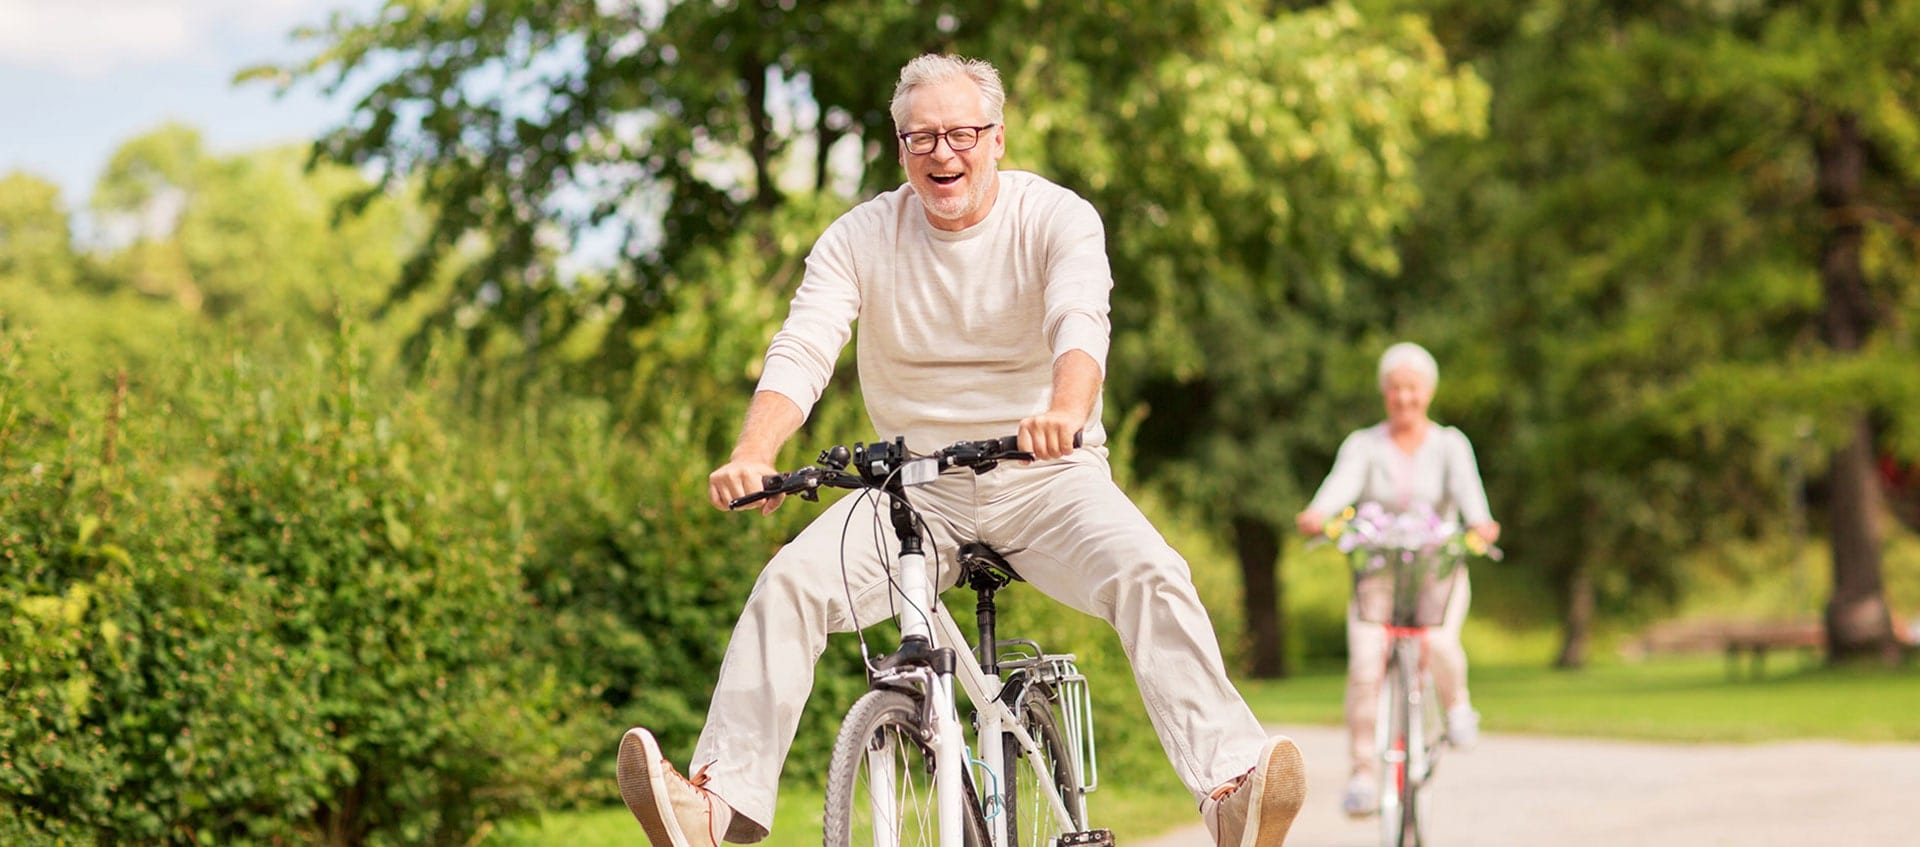 Older Man on a bike laughing with his feet off the pedals and woman riding in distance